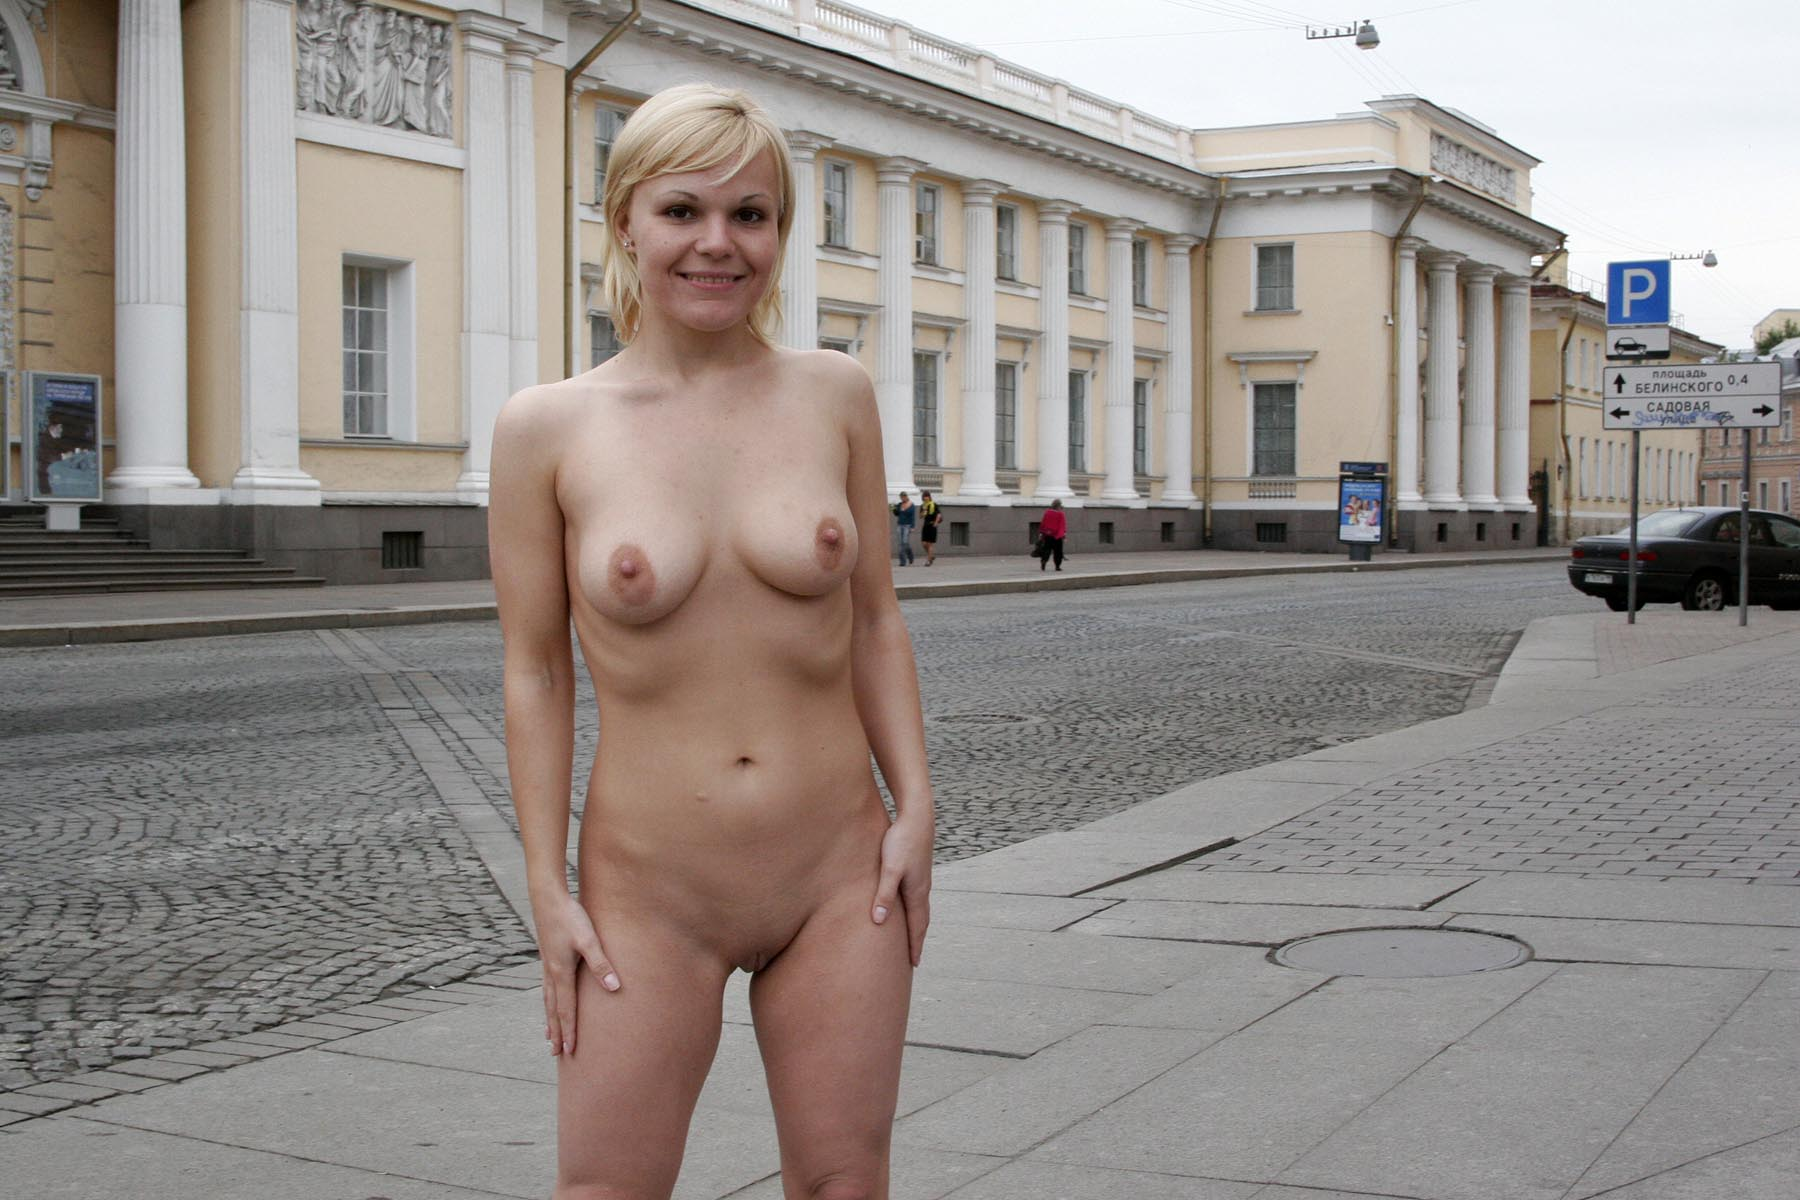 Here Girls with short blonde hair nude opinion you